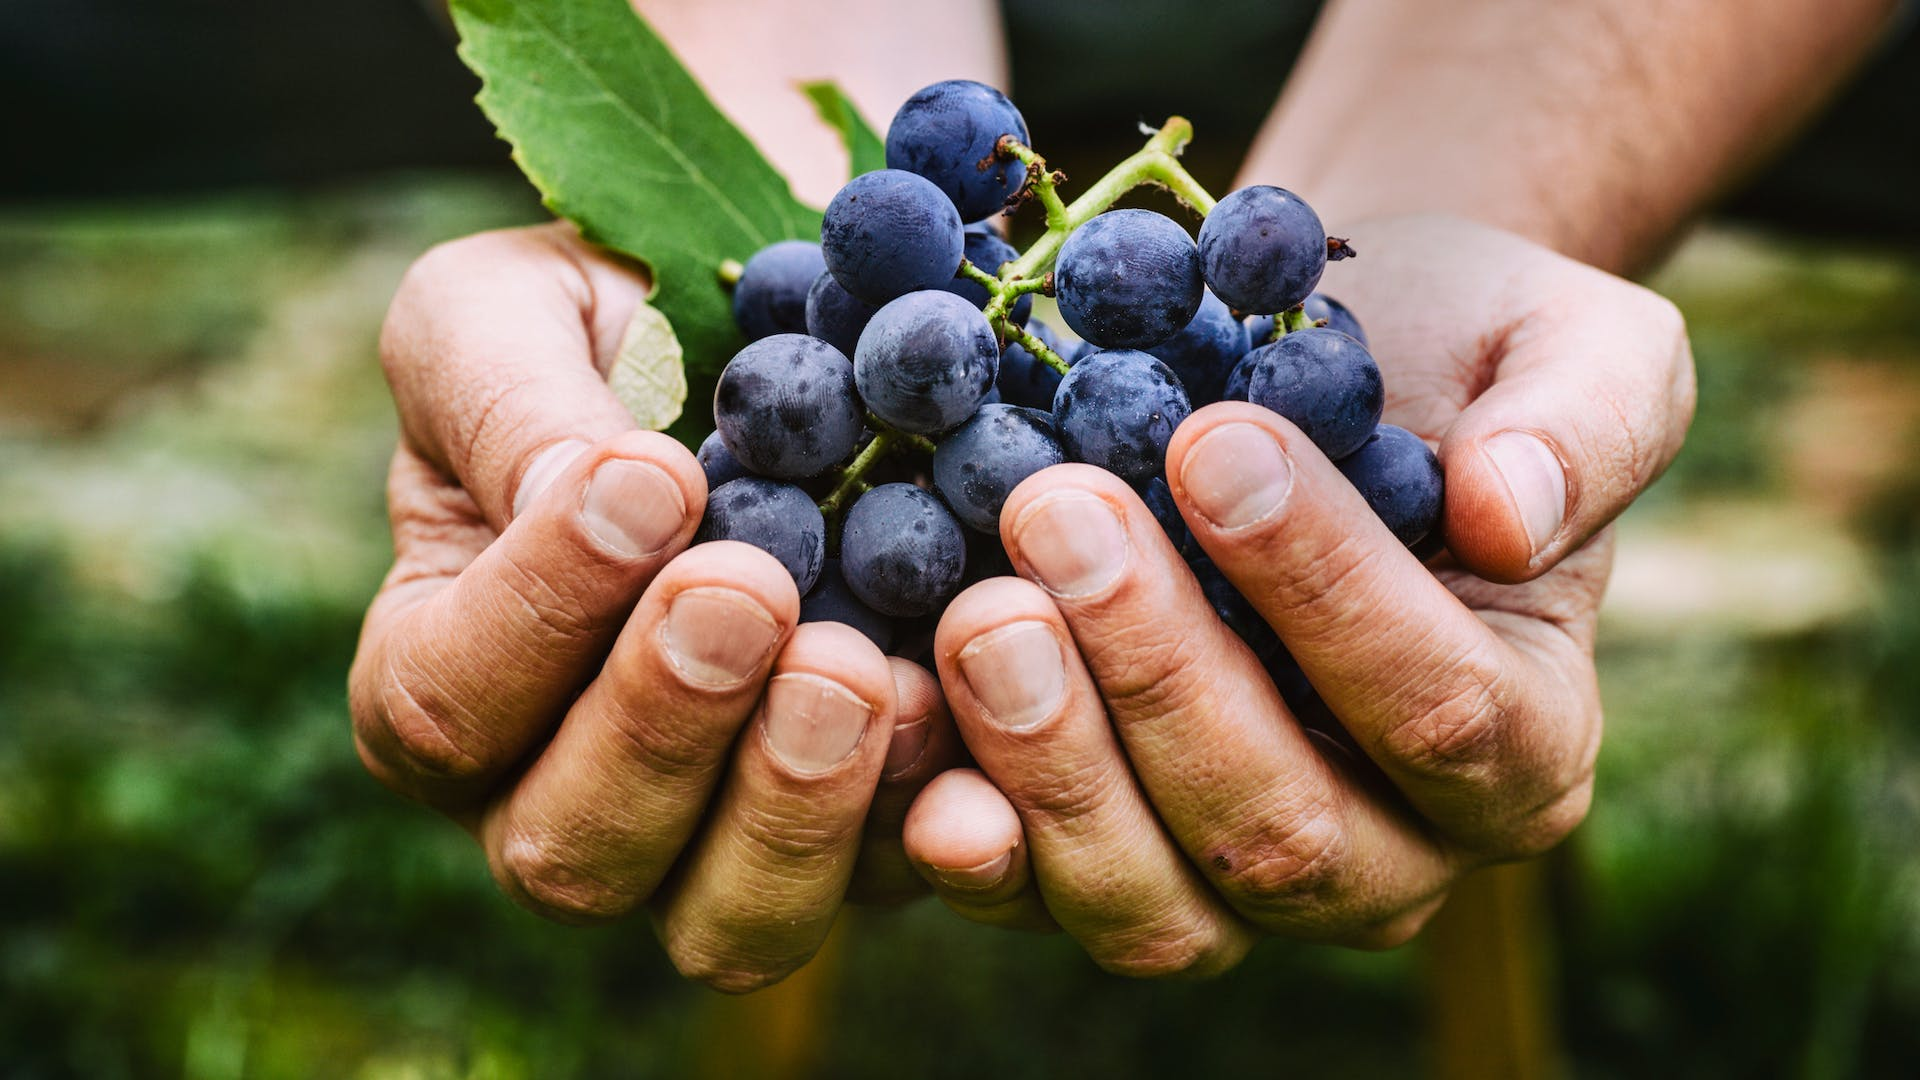 A handful of grapes